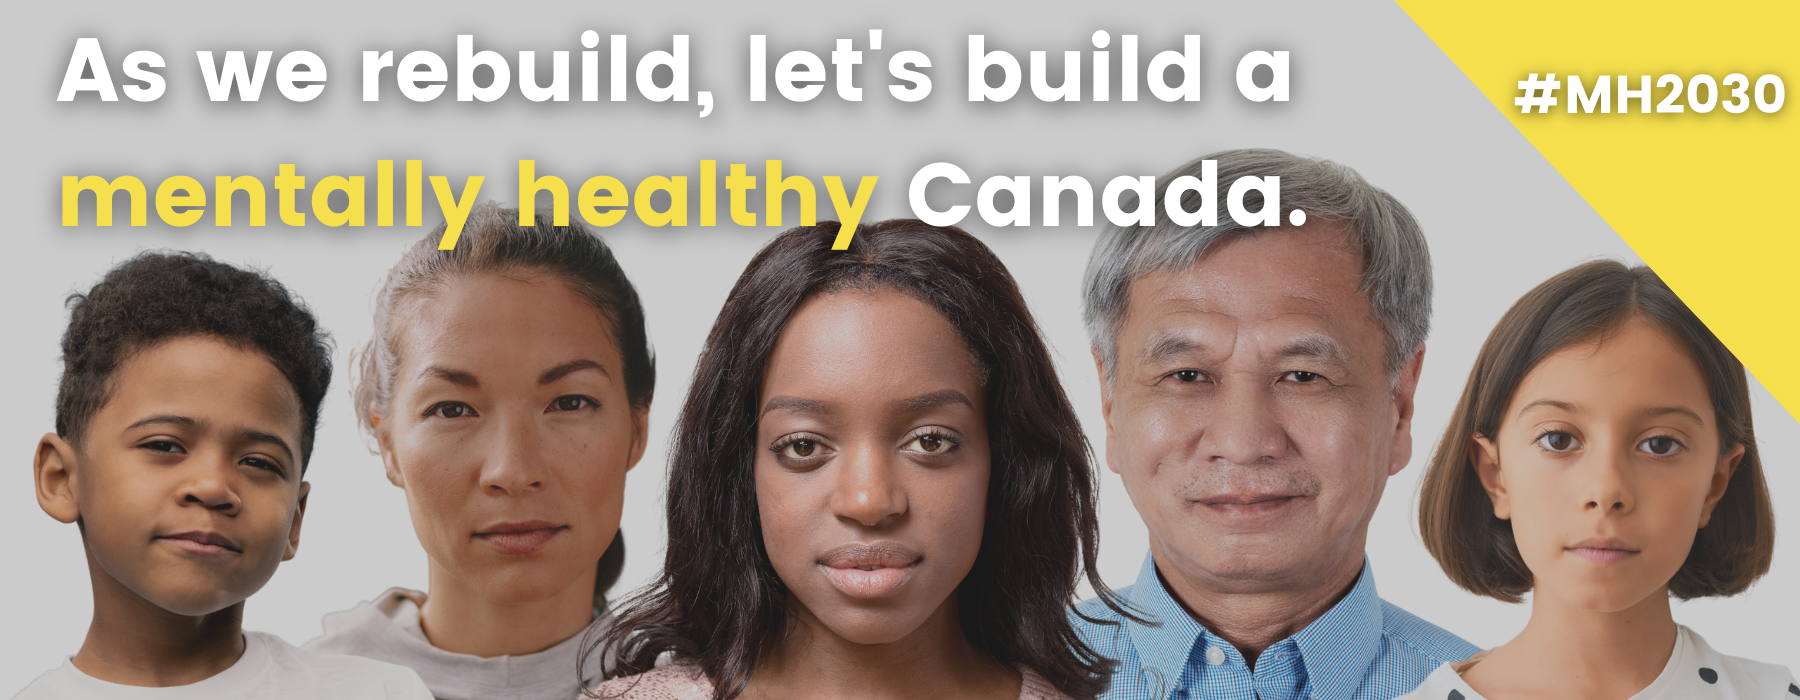 as we rebuild, let's build a mentally health canada, faces of diverse people